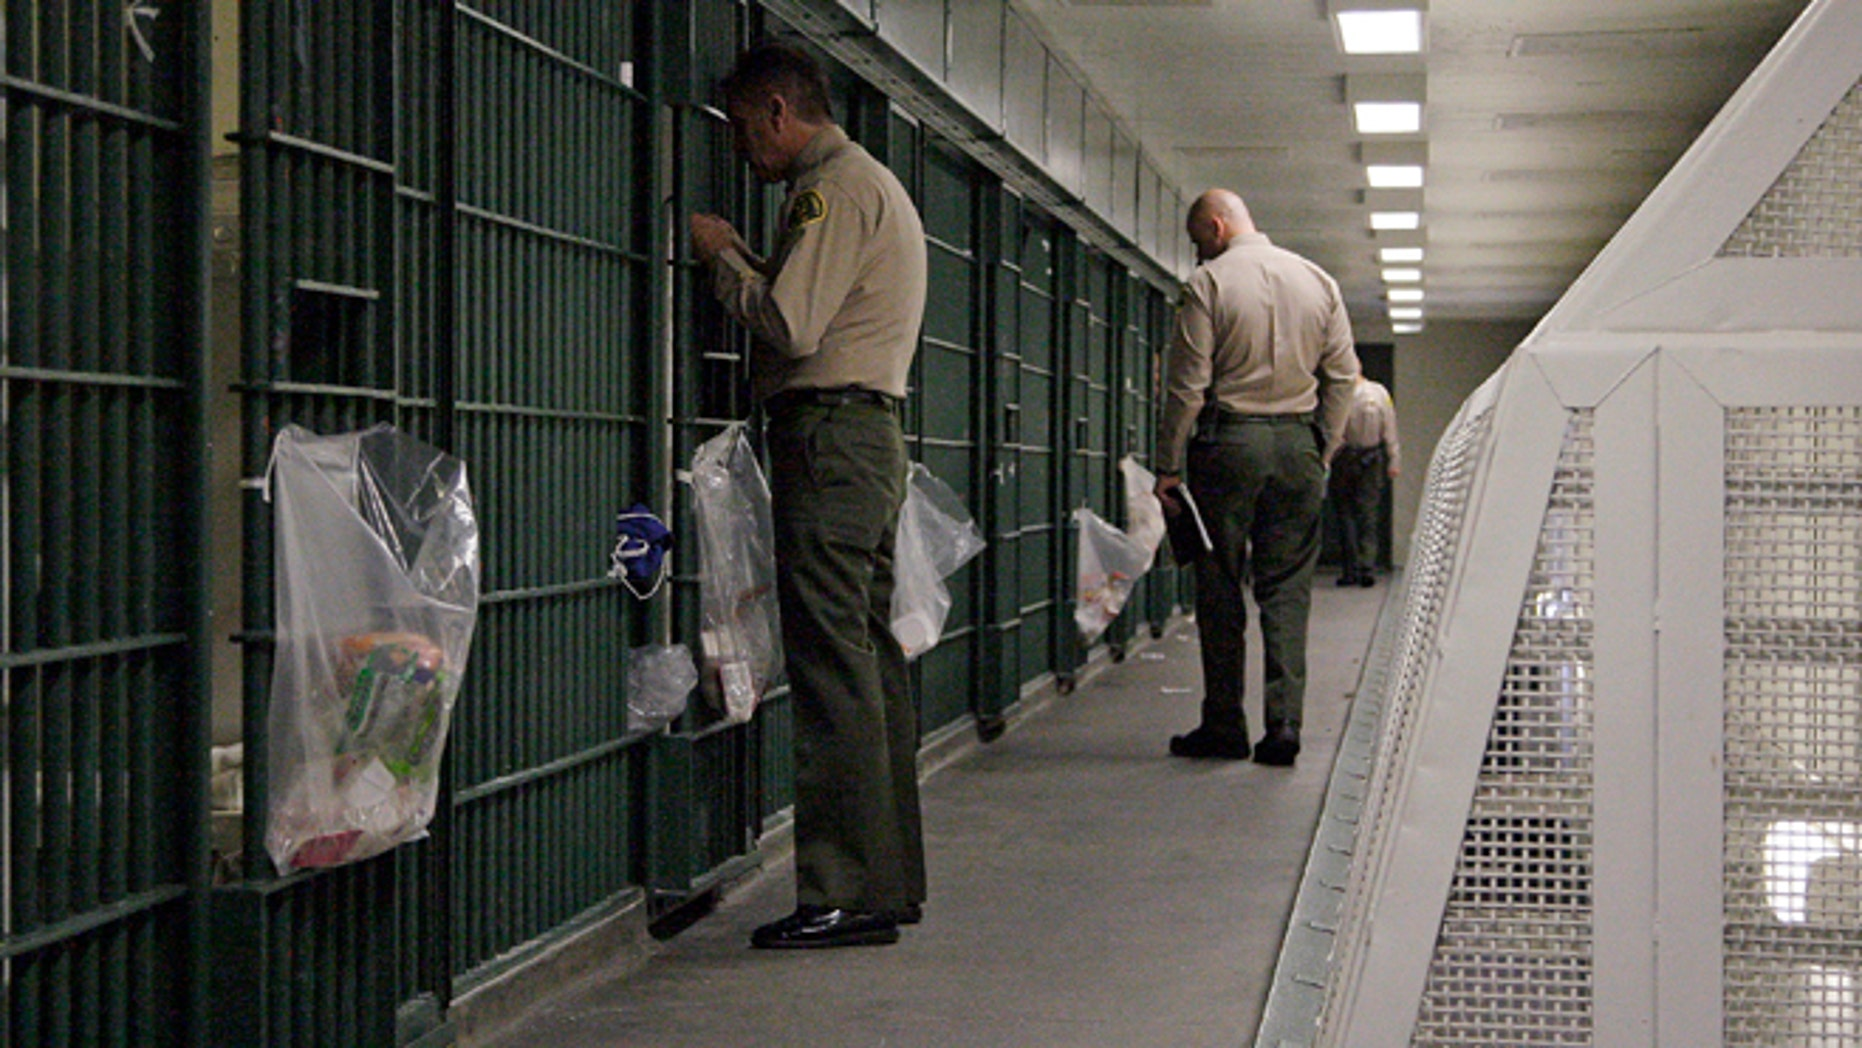 "FILE - In this Oct. 3, 2012, file photo, Los Angeles County Sheriff's deputies inspect a cell block at the Men's Central Jail in downtown Los Angeles. Federal officials say 18 current and former Los Angeles County sheriff's deputies saw themselves as being ""above the law,"" engaging in corruption and civil rights abuses that included beating inmates and visitors, falsifying reports, and trying to block an FBI probe of the nation's largest jail system. (AP Photo/Reed Saxon, File)"